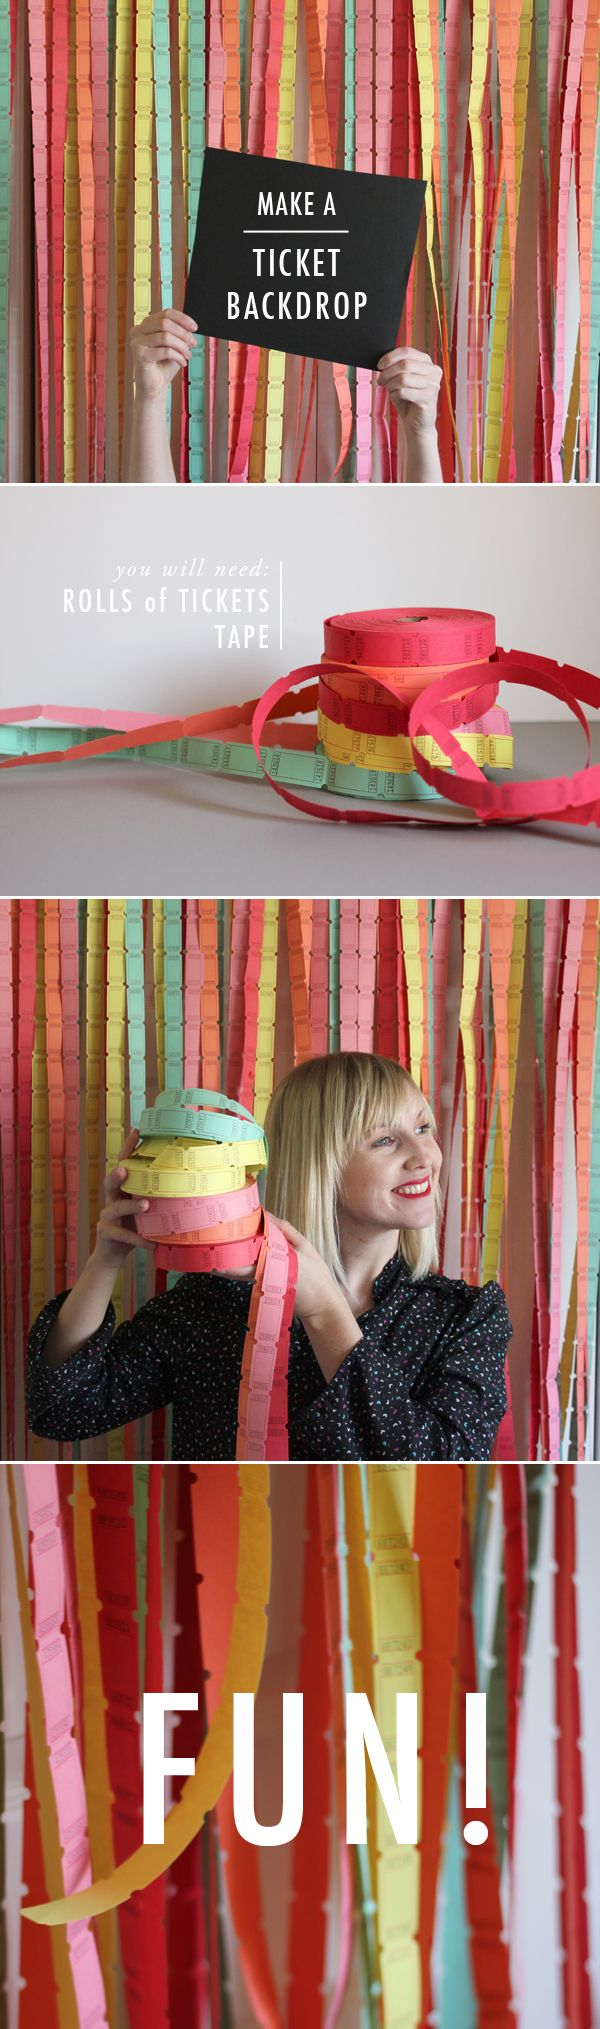 Another good idea that never crossed my mind. How fun is this?! DIY ticket backdrop for a photobooth